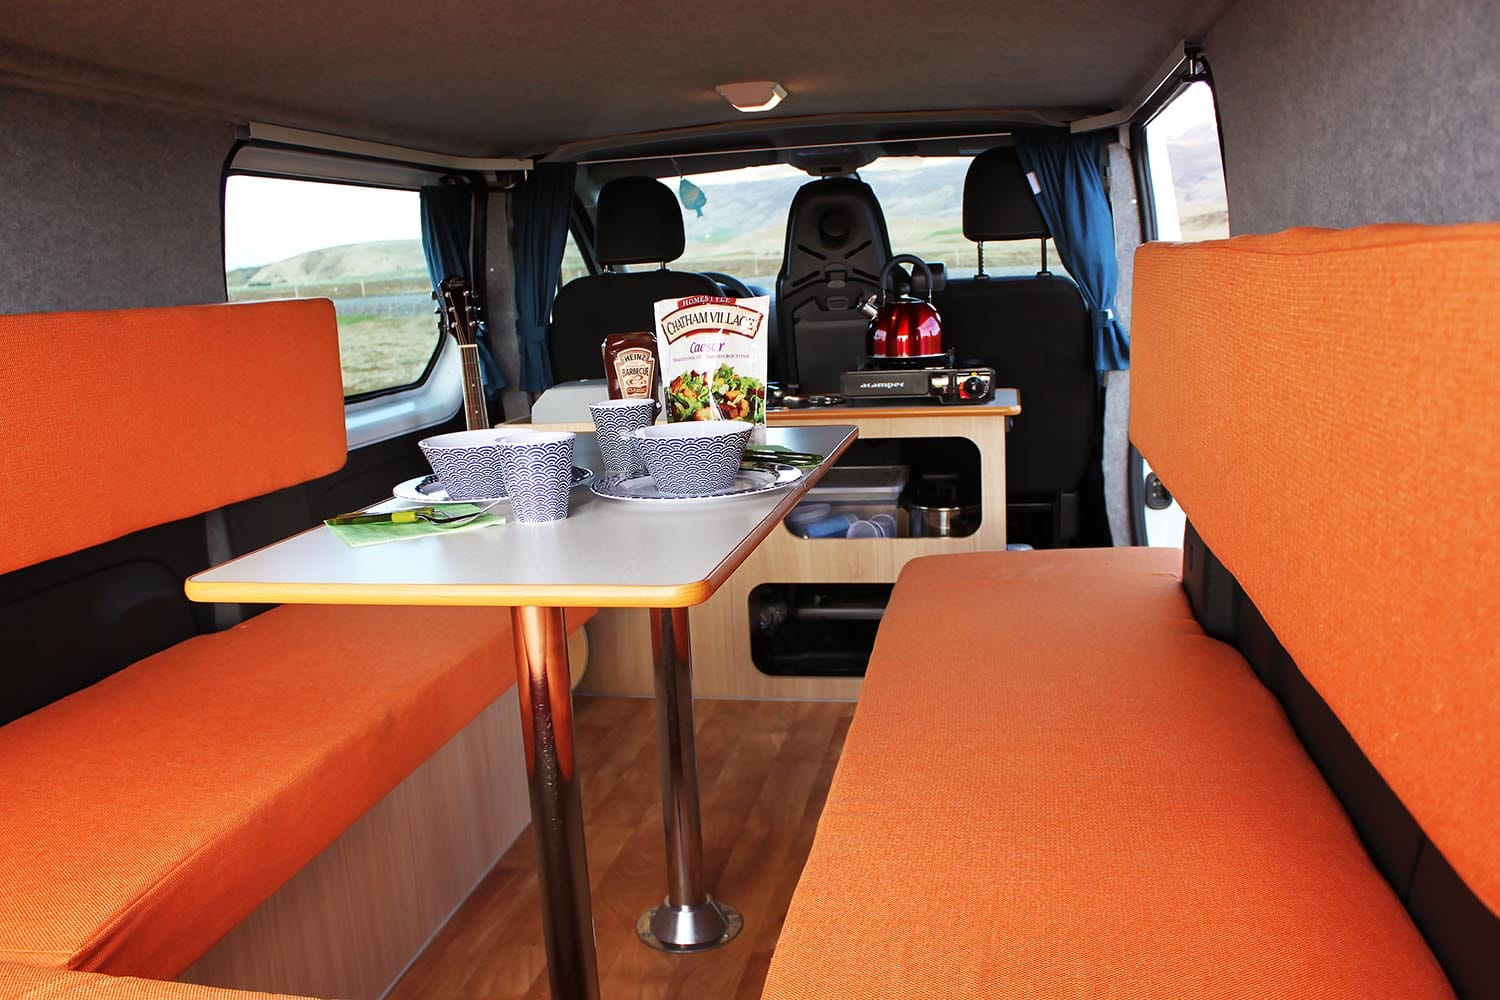 Camper-Iceland-Renault-Traffic-Sleeping-and-cooking-area